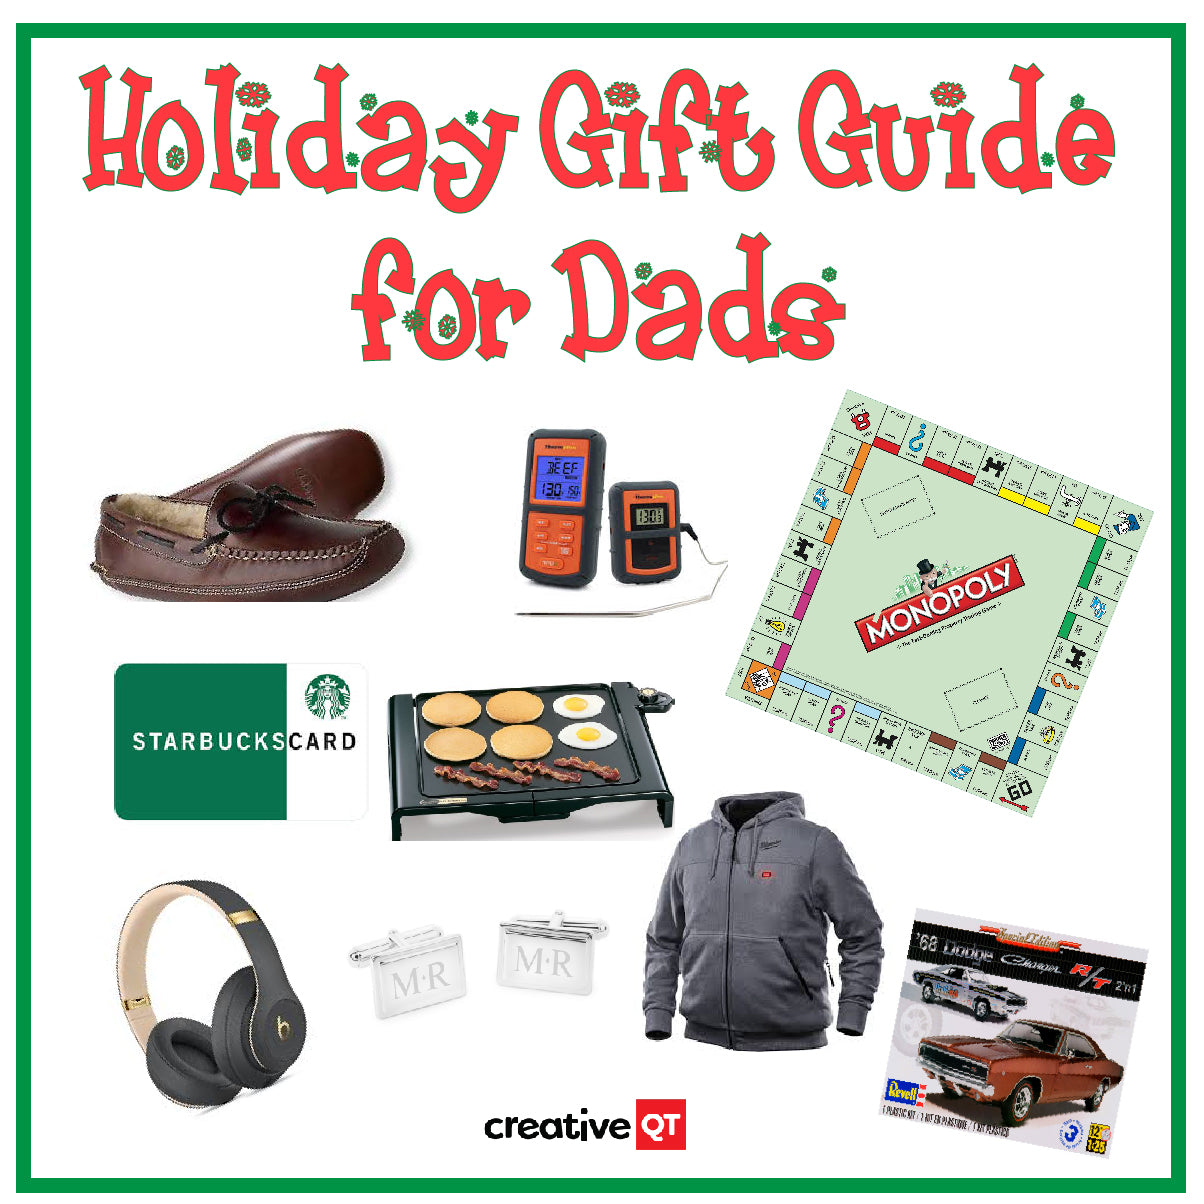 Holiday Gift Ideas for Dads